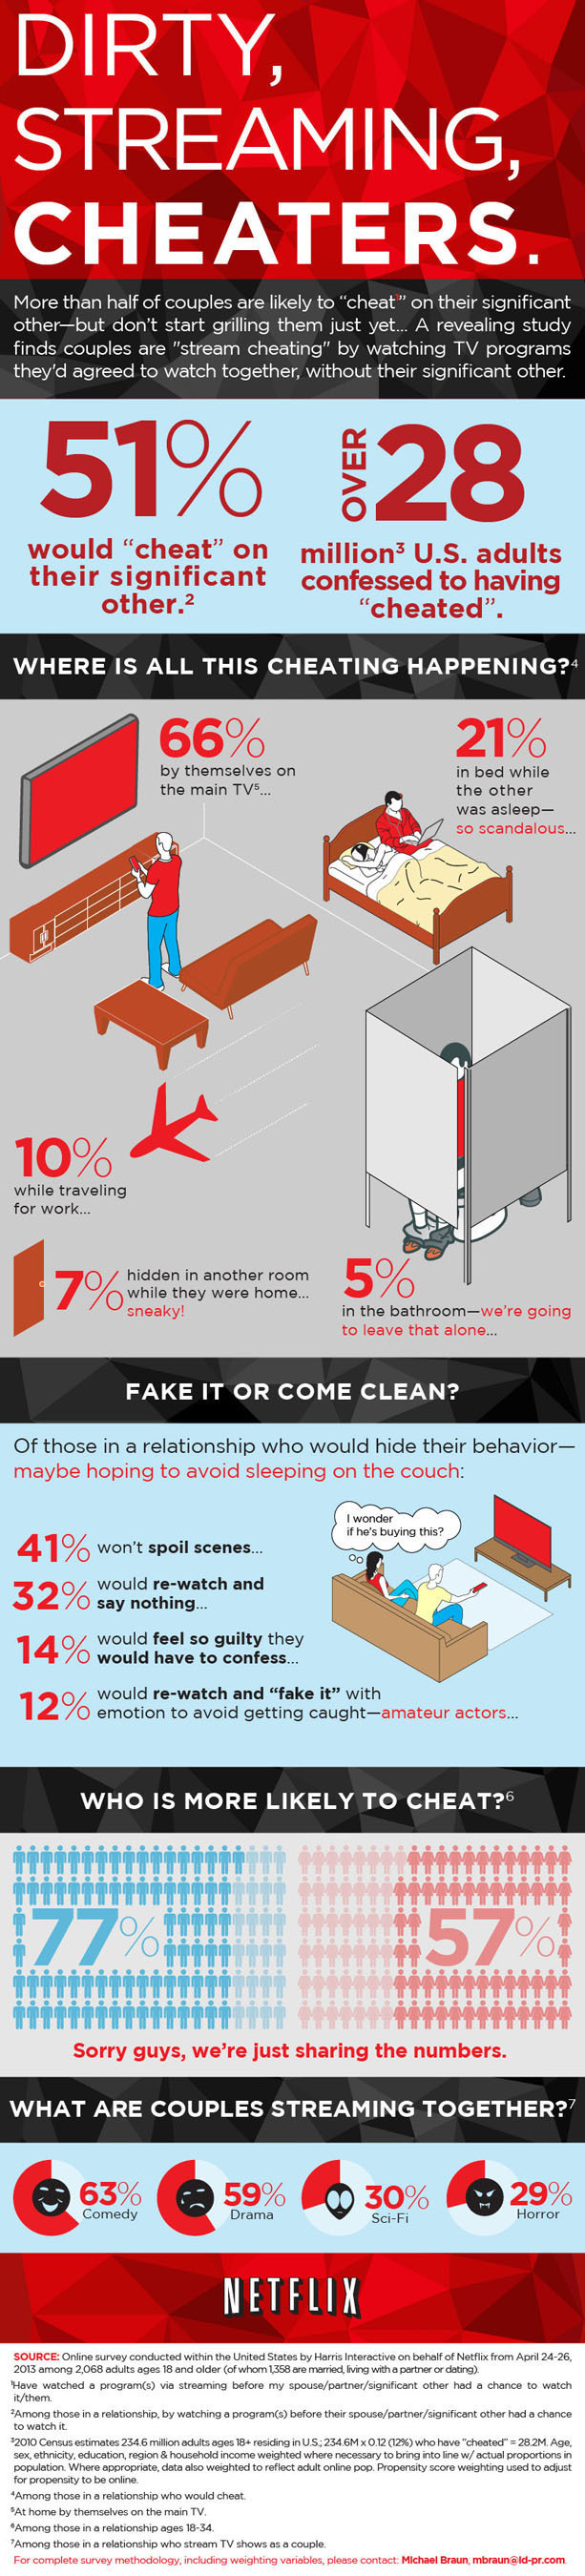 "Netflix Reports More than Half of Couples are Likely to ""Cheat.""  (PRNewsFoto/Netflix, Inc.)"